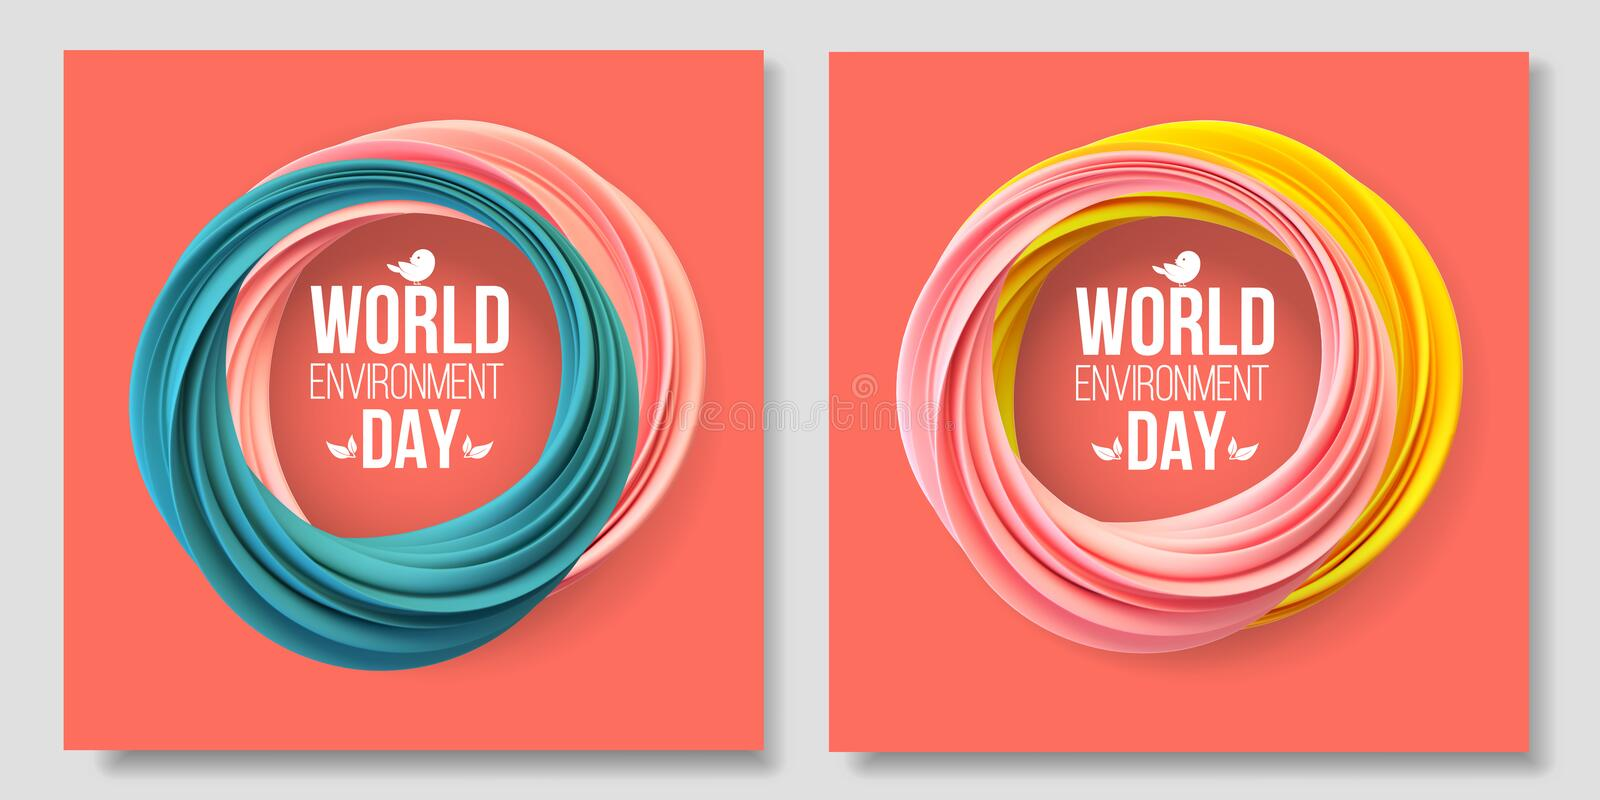 World Environment Day card, banner, logo on the living coral background. Abstract shapes. 5 june. Ecology, bio, nature. World Environment Day card, banner, logo stock illustration